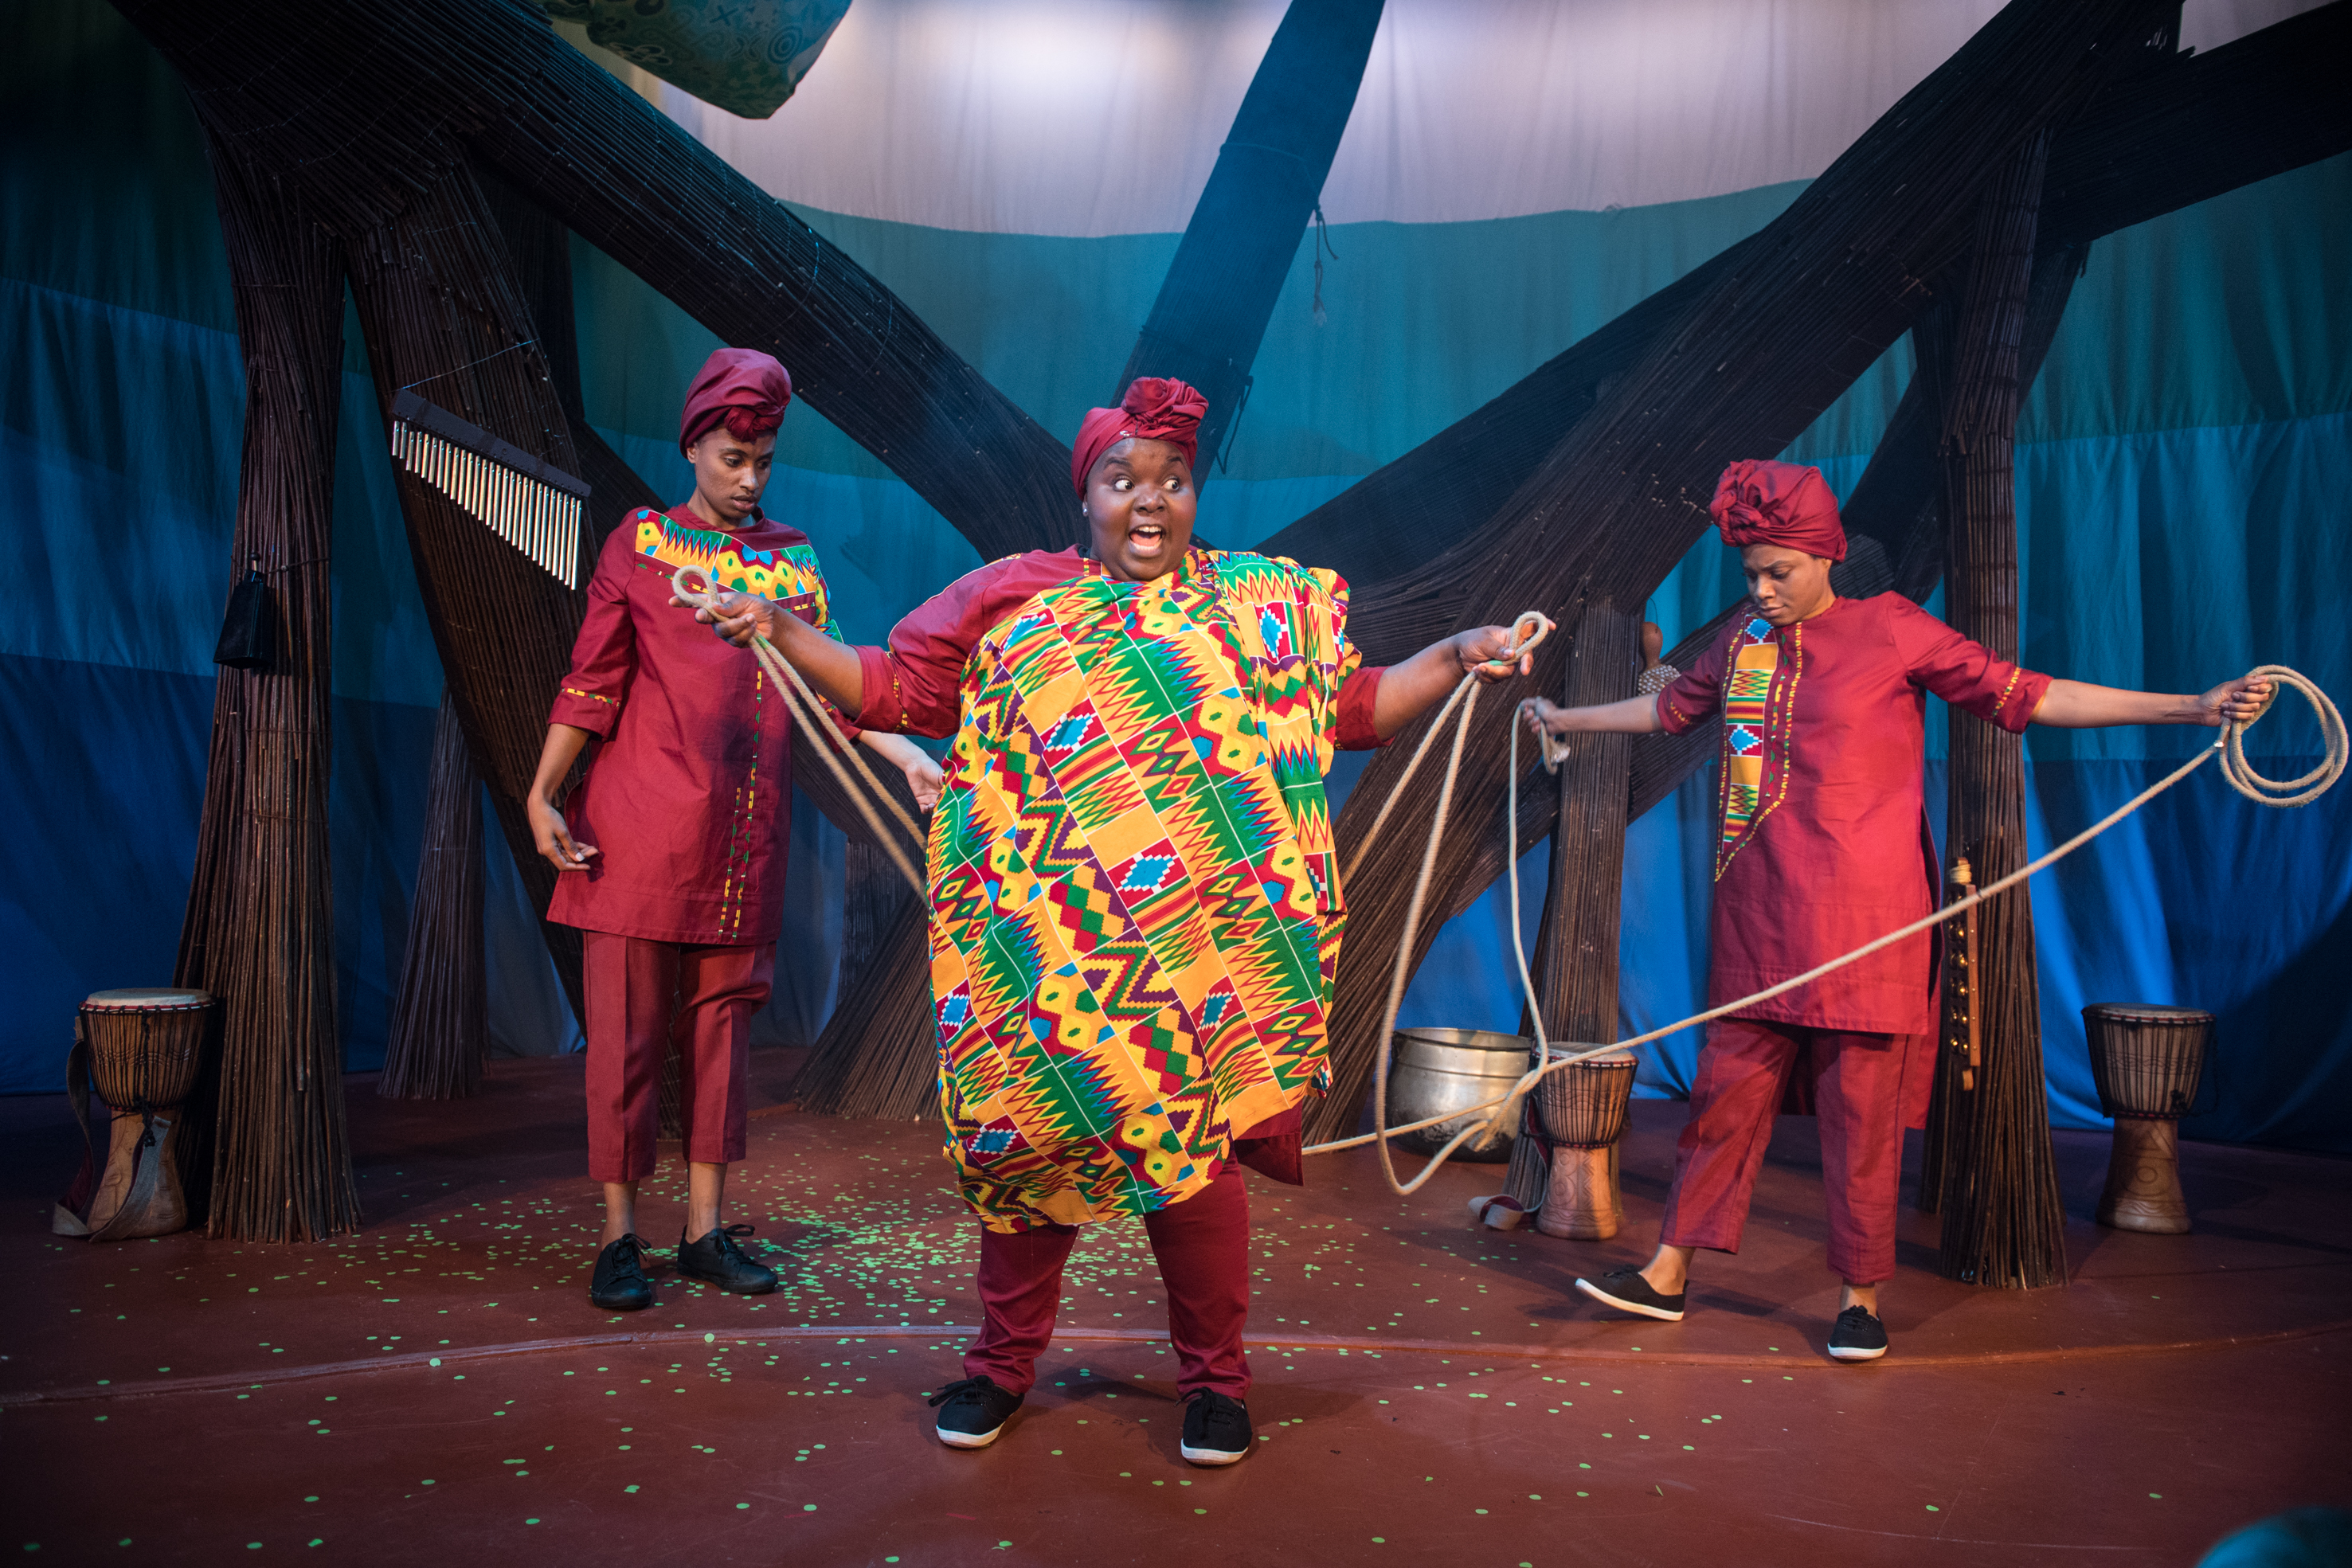 Afia Abusham, Juliet Okotie and Sapphire Joy in Anansi the Spider at the Unicorn Theatre. Photo Craig Sugden